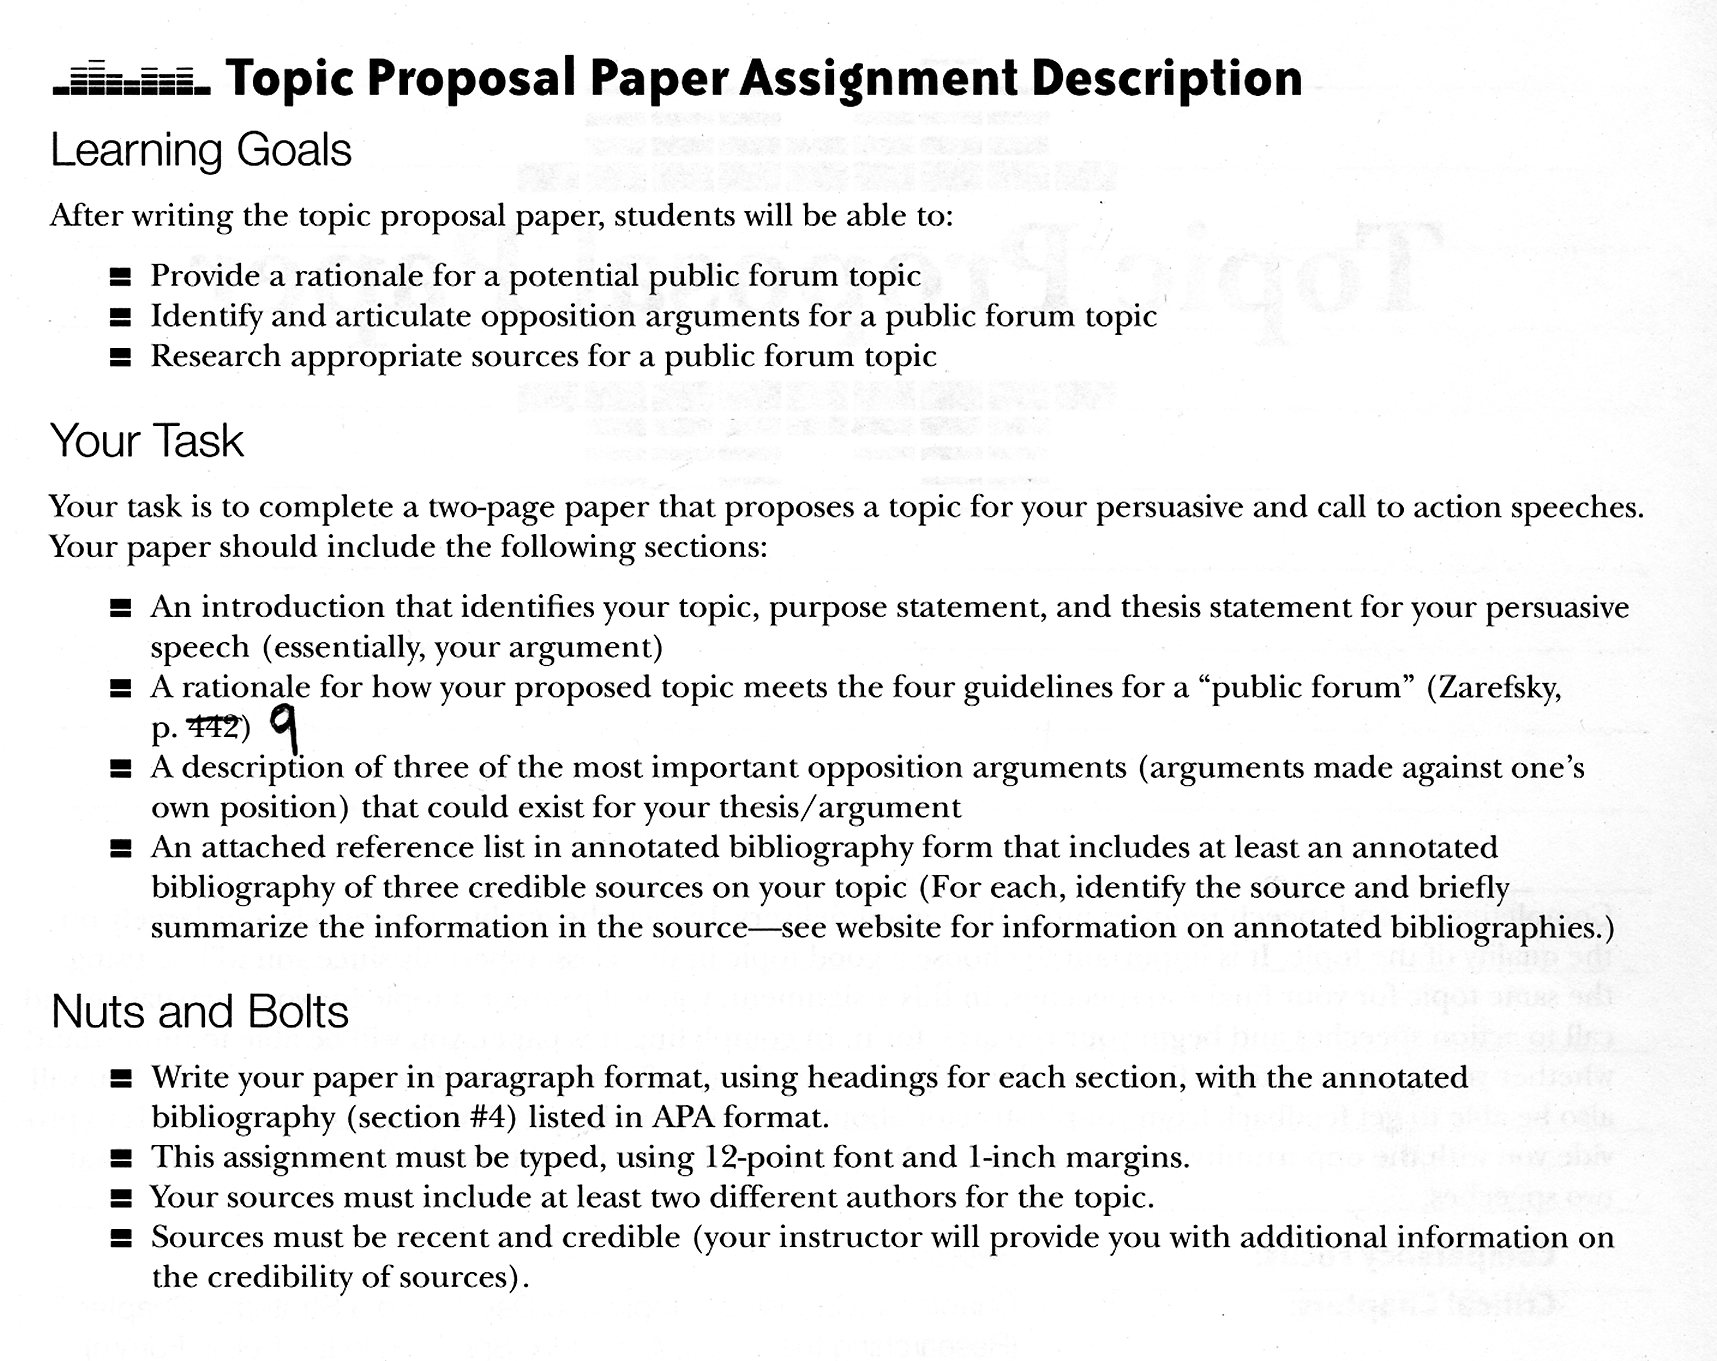 019 U003d Essay Example Good Argumentative Top Topics Ideas High School For Middle With Articles About Sports Full